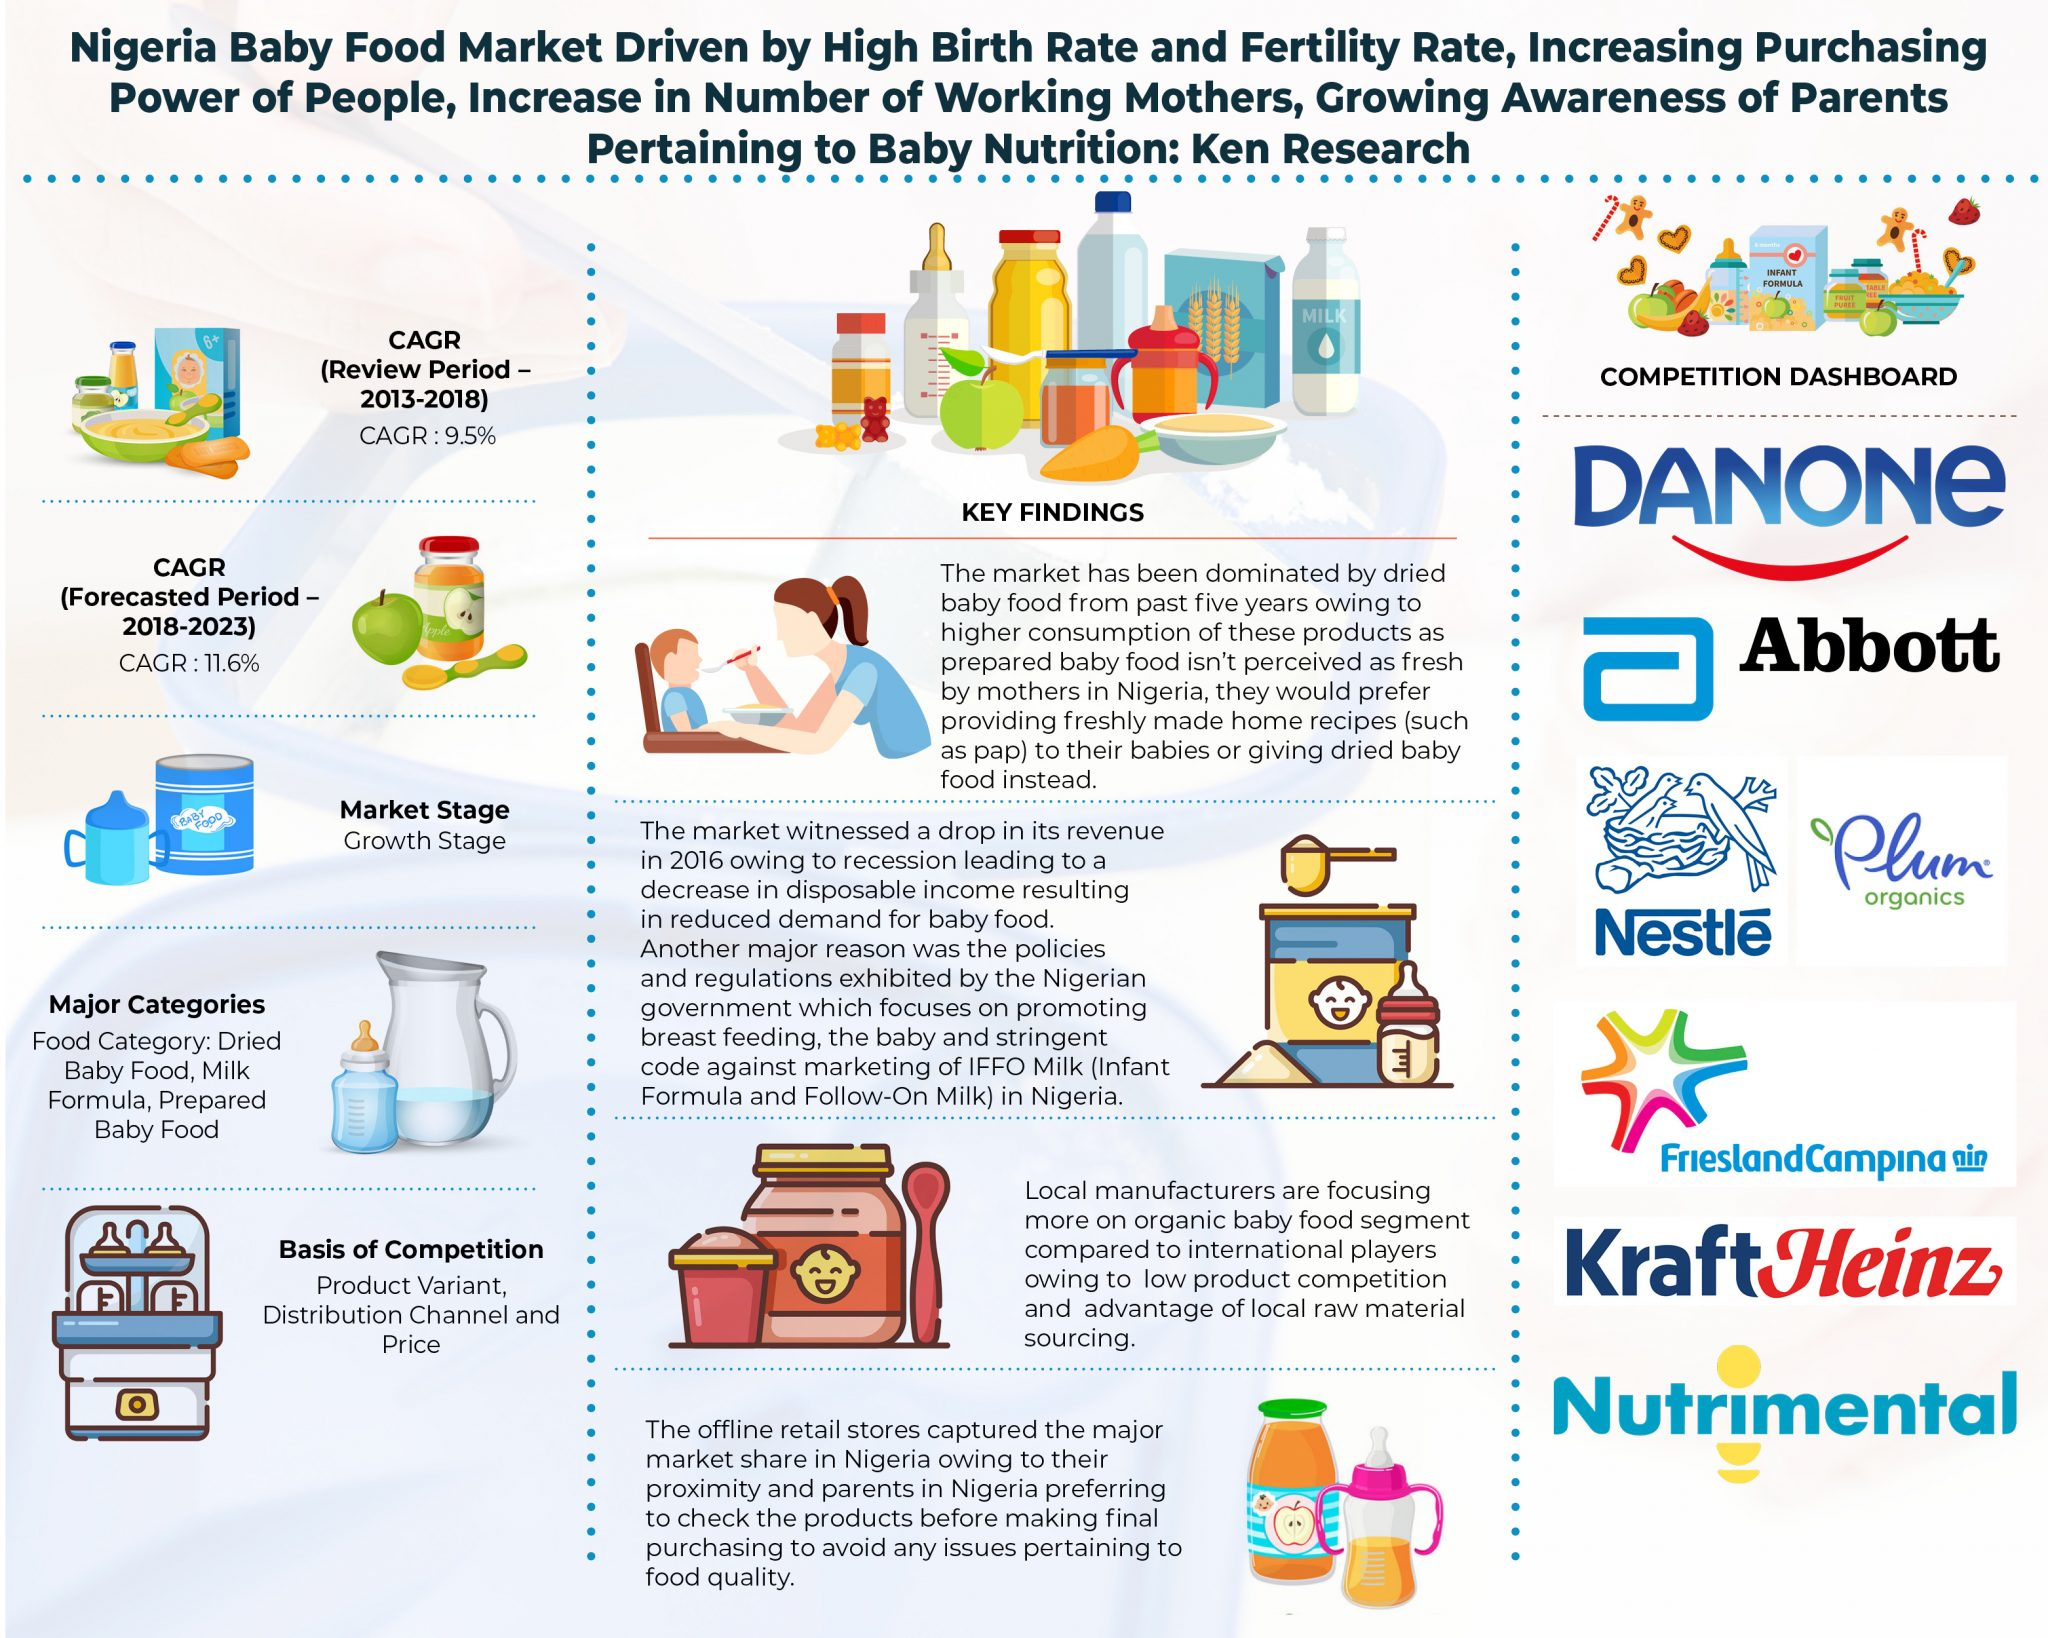 Nigeria Baby Food Market Outlook To 2023: Ken Research